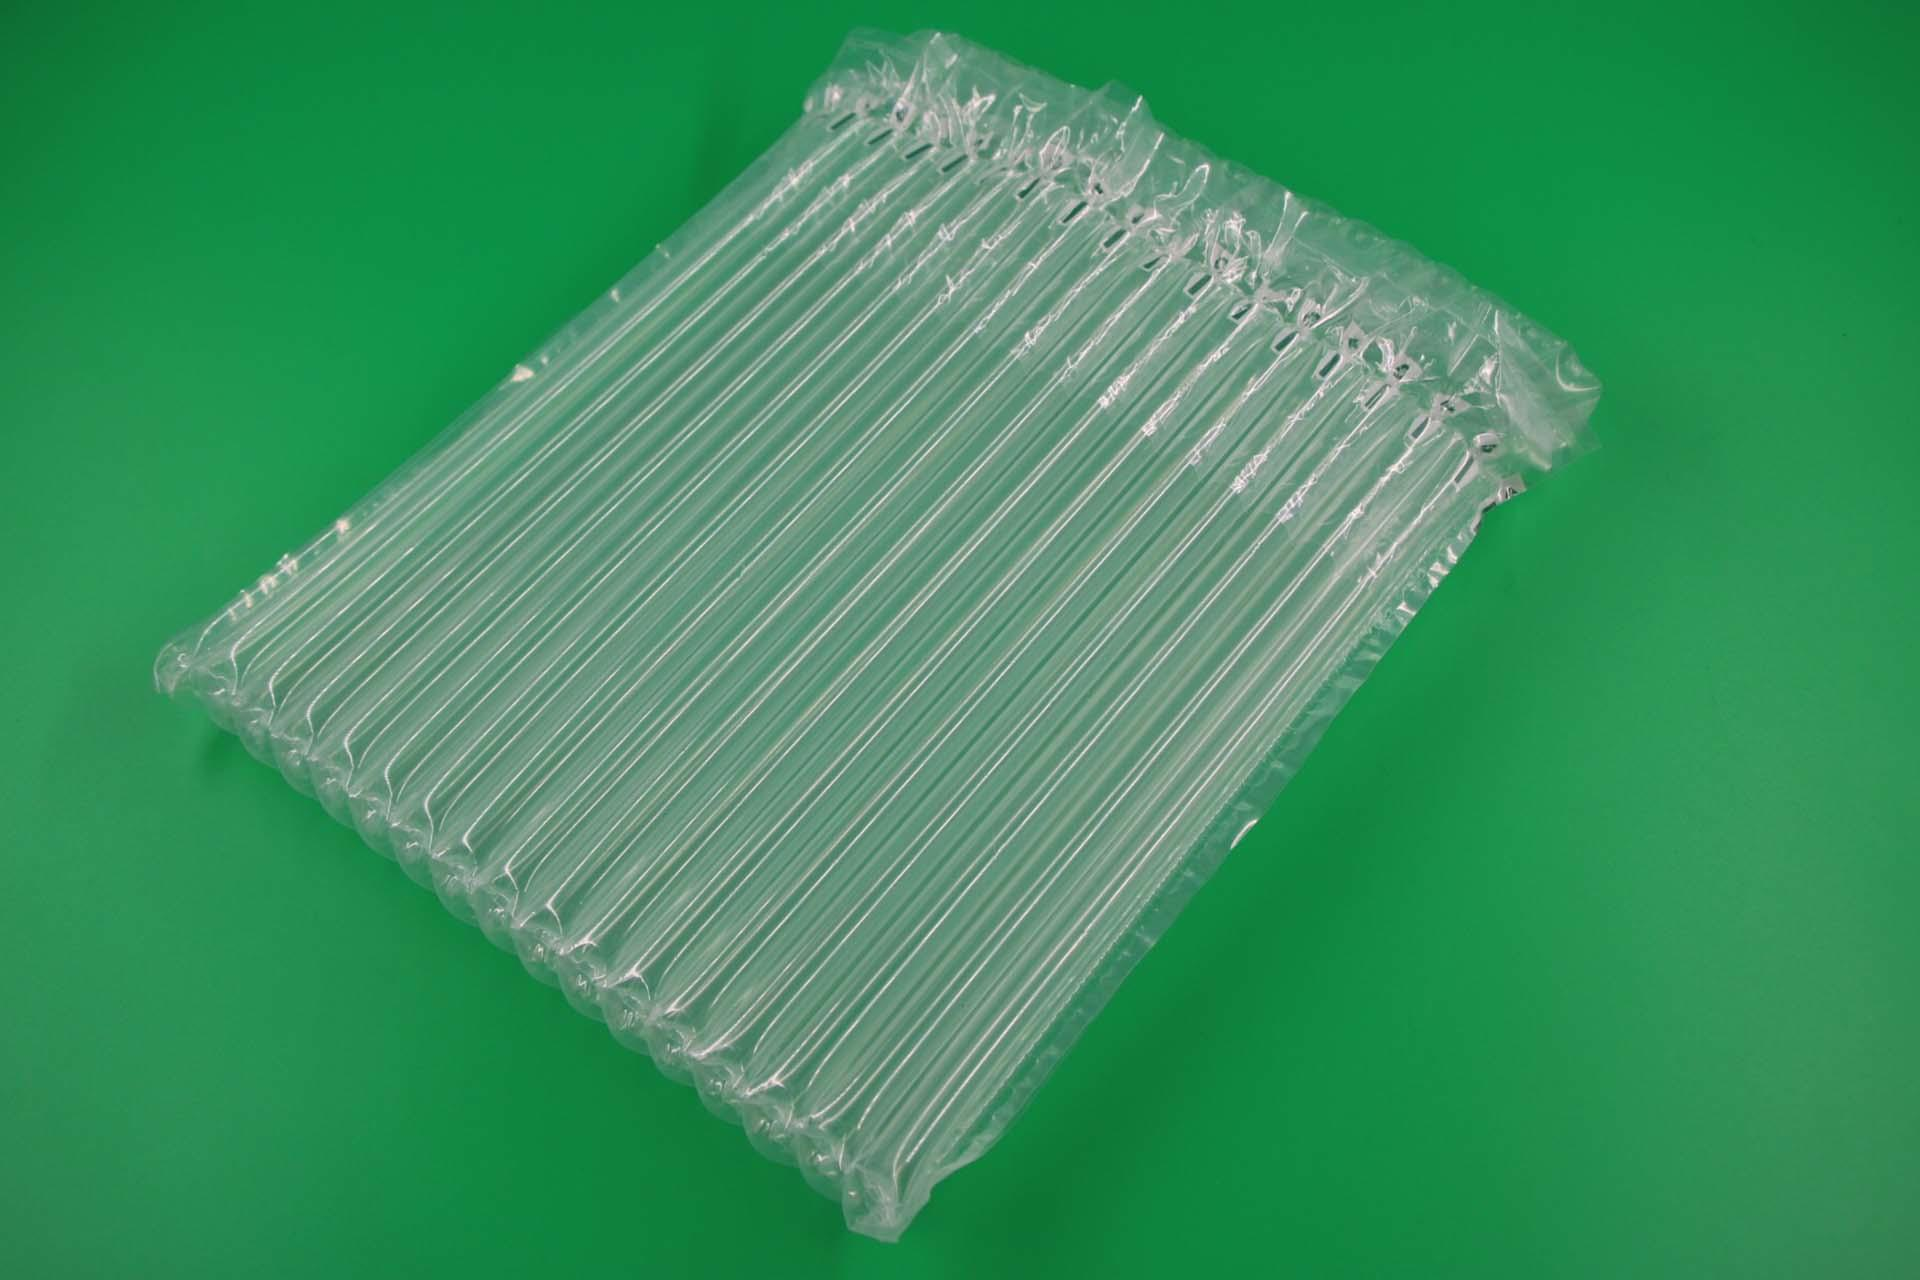 Sunshinepack top brand plastic air bubble packaging manufacturers for goods-3